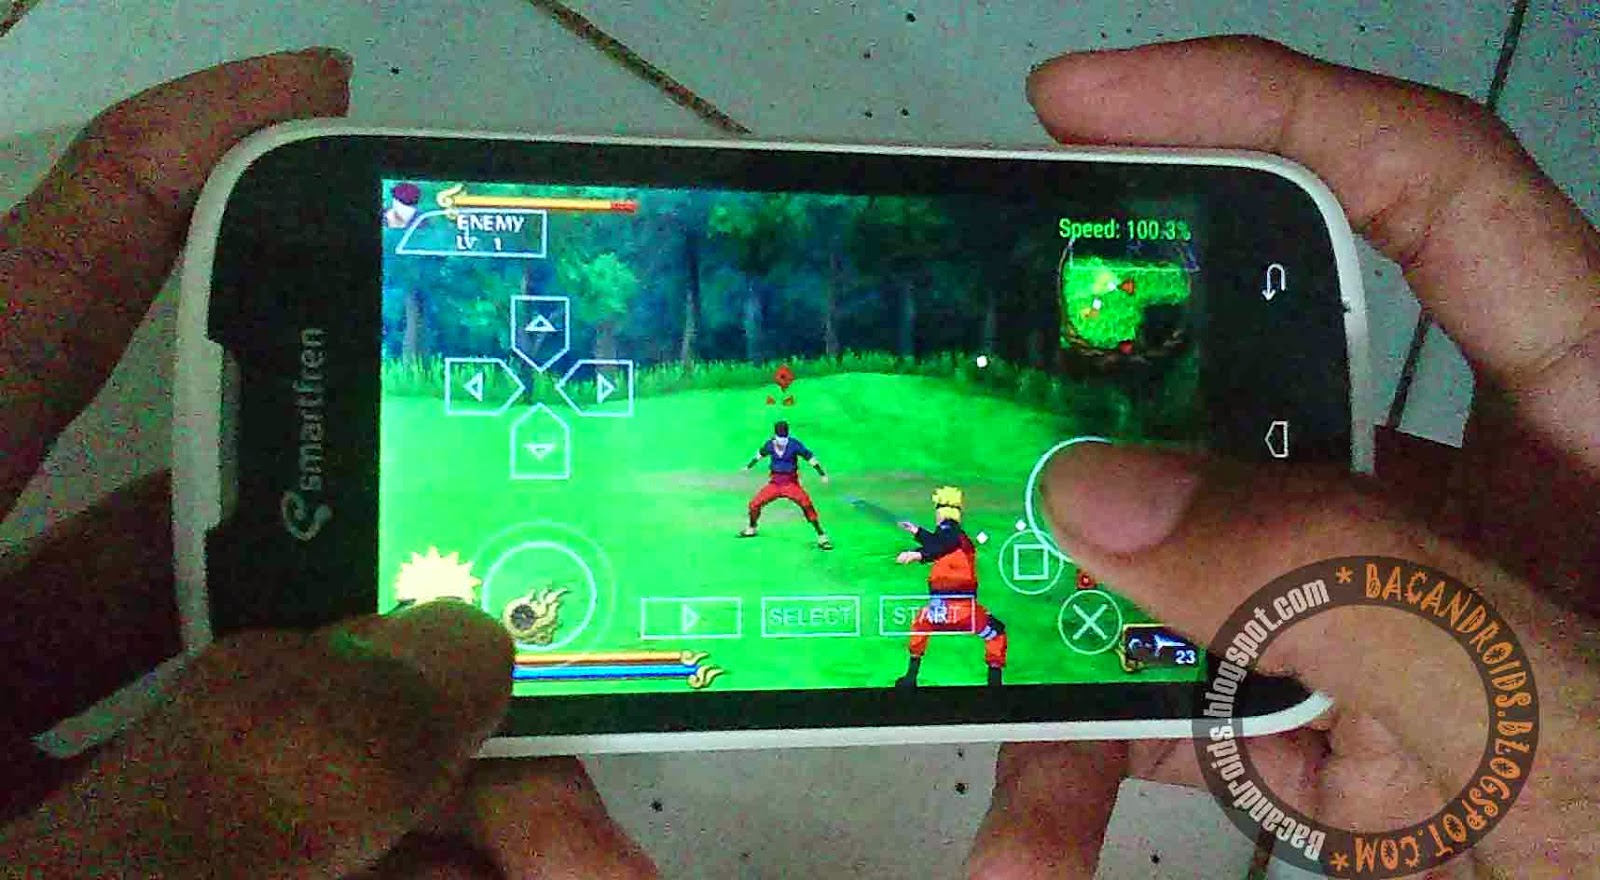 Game Naruto Shippuden Legends Cso For Ppsspp Android Play Store Google